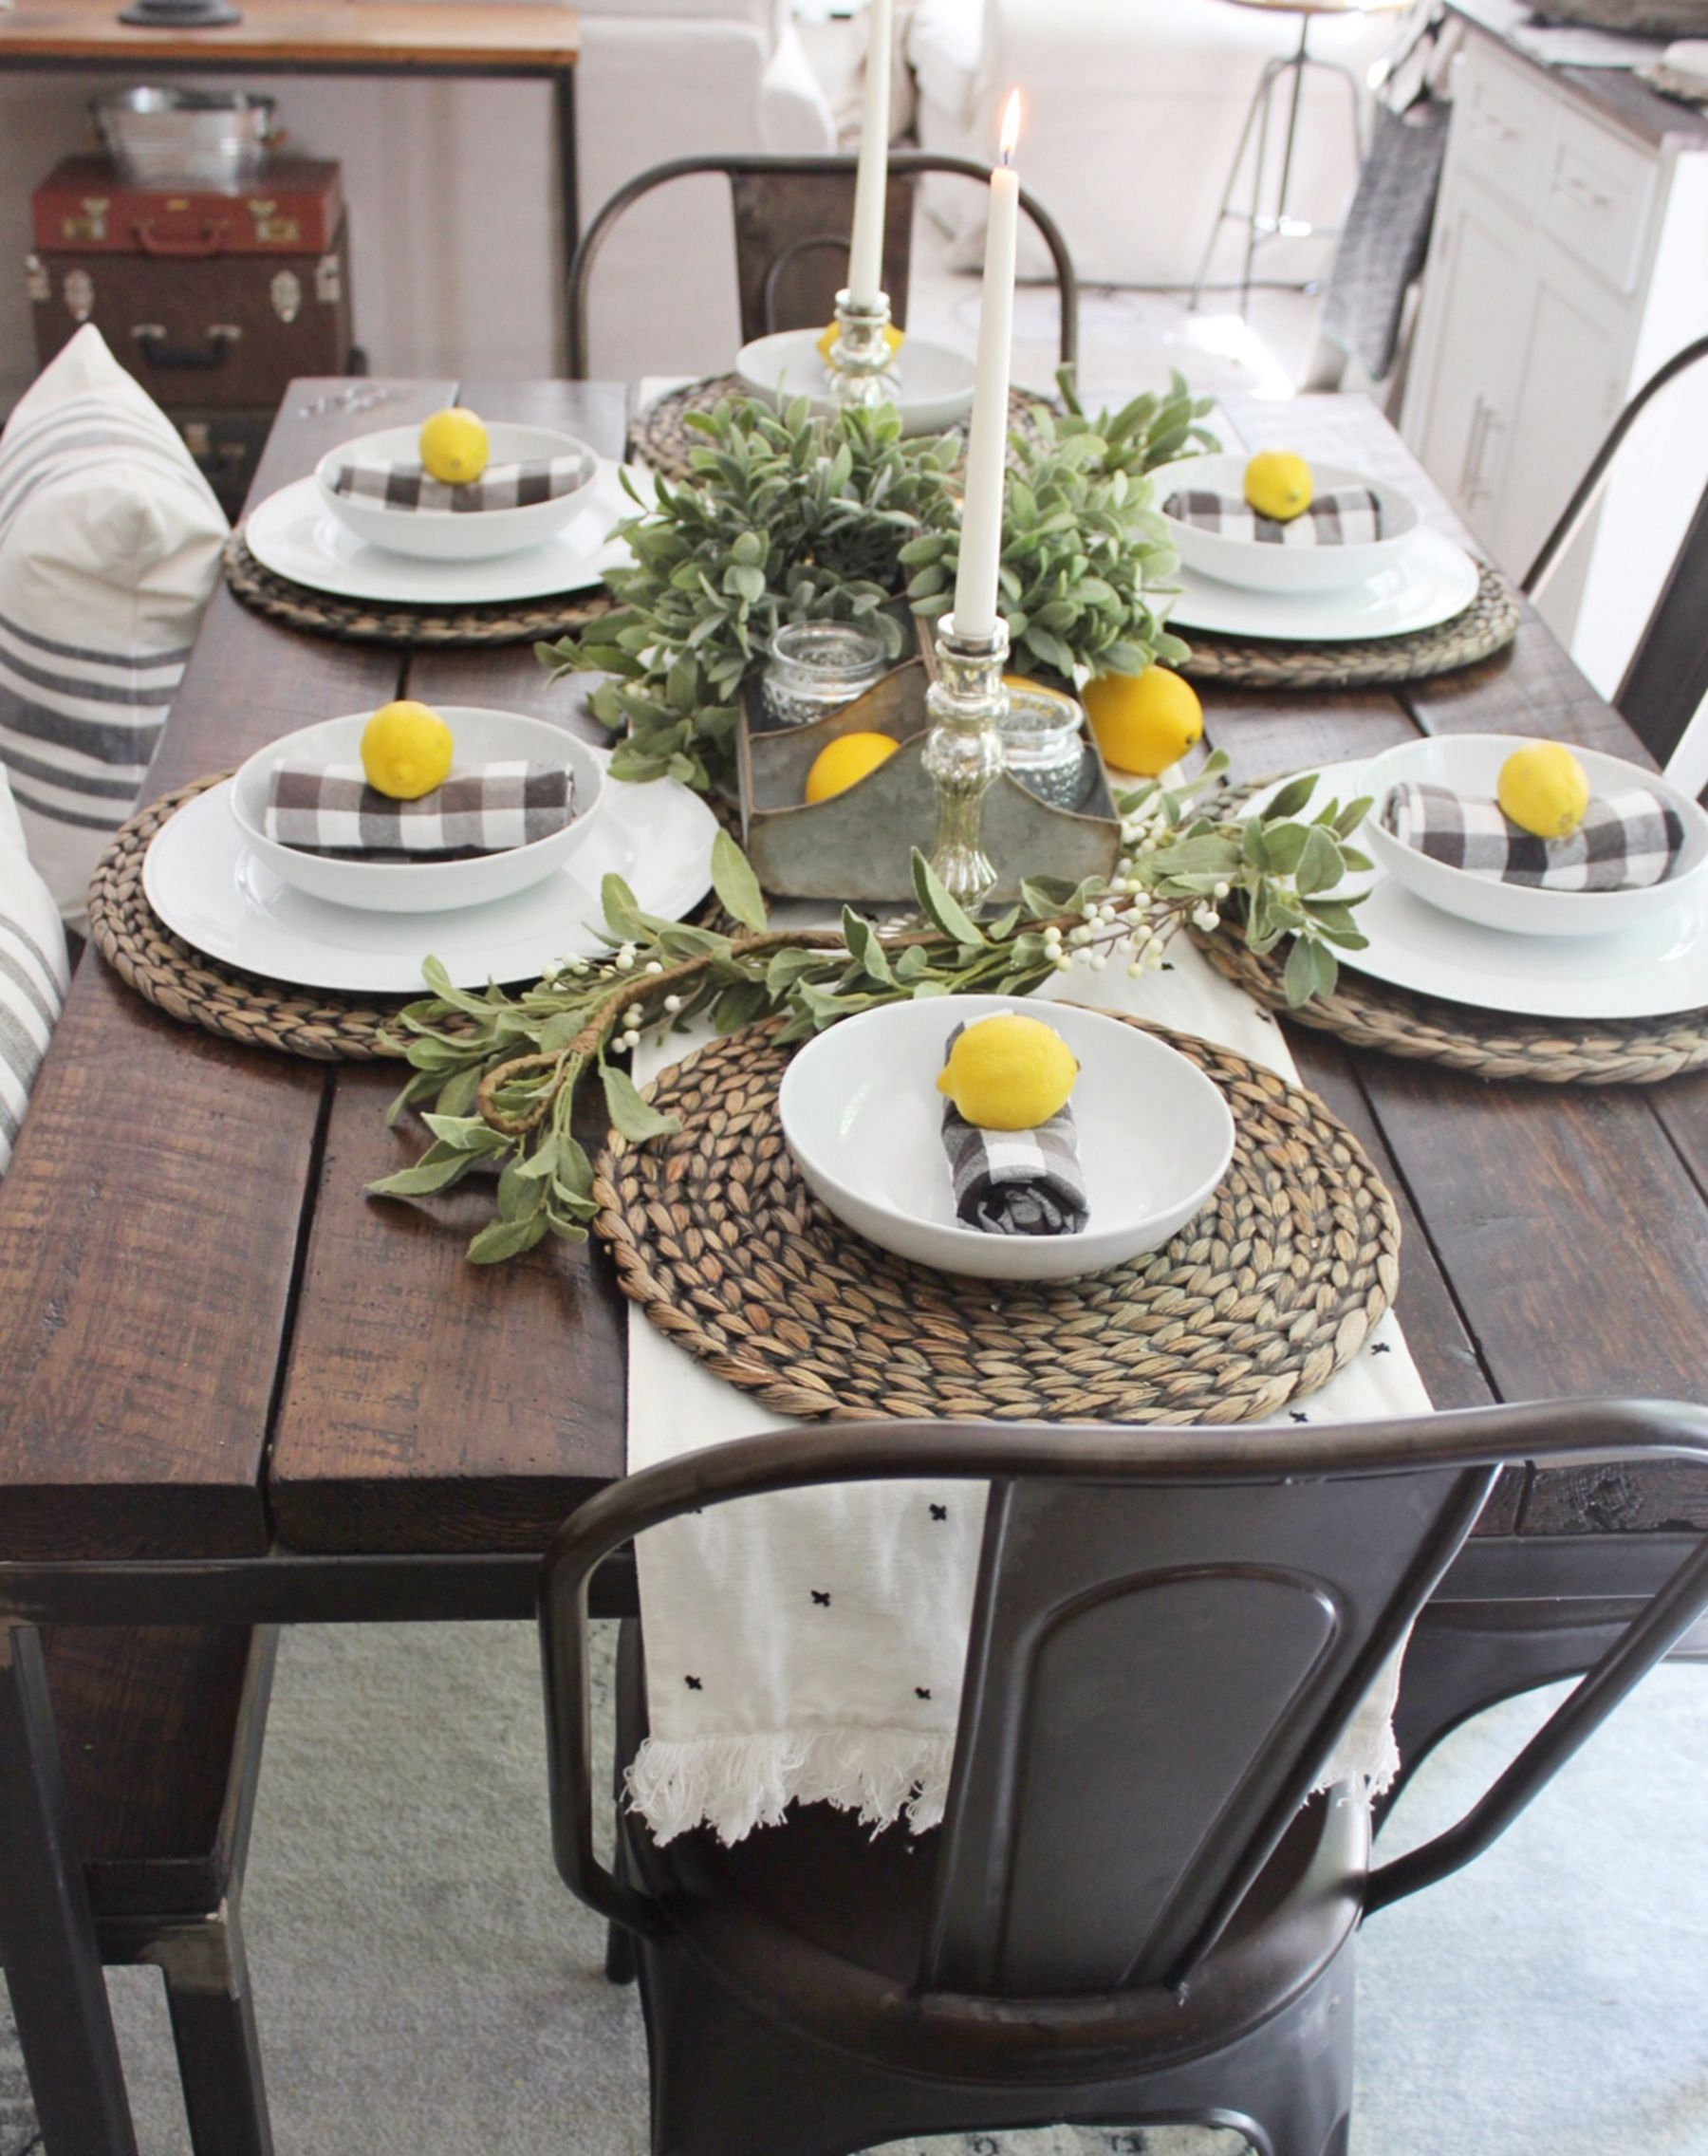 12 Beautiful Summer Dining Room Decoration Ideas For Inspirations Dining Room Table Centerpieces Dining Room Table Decor Dining Room Centerpiece